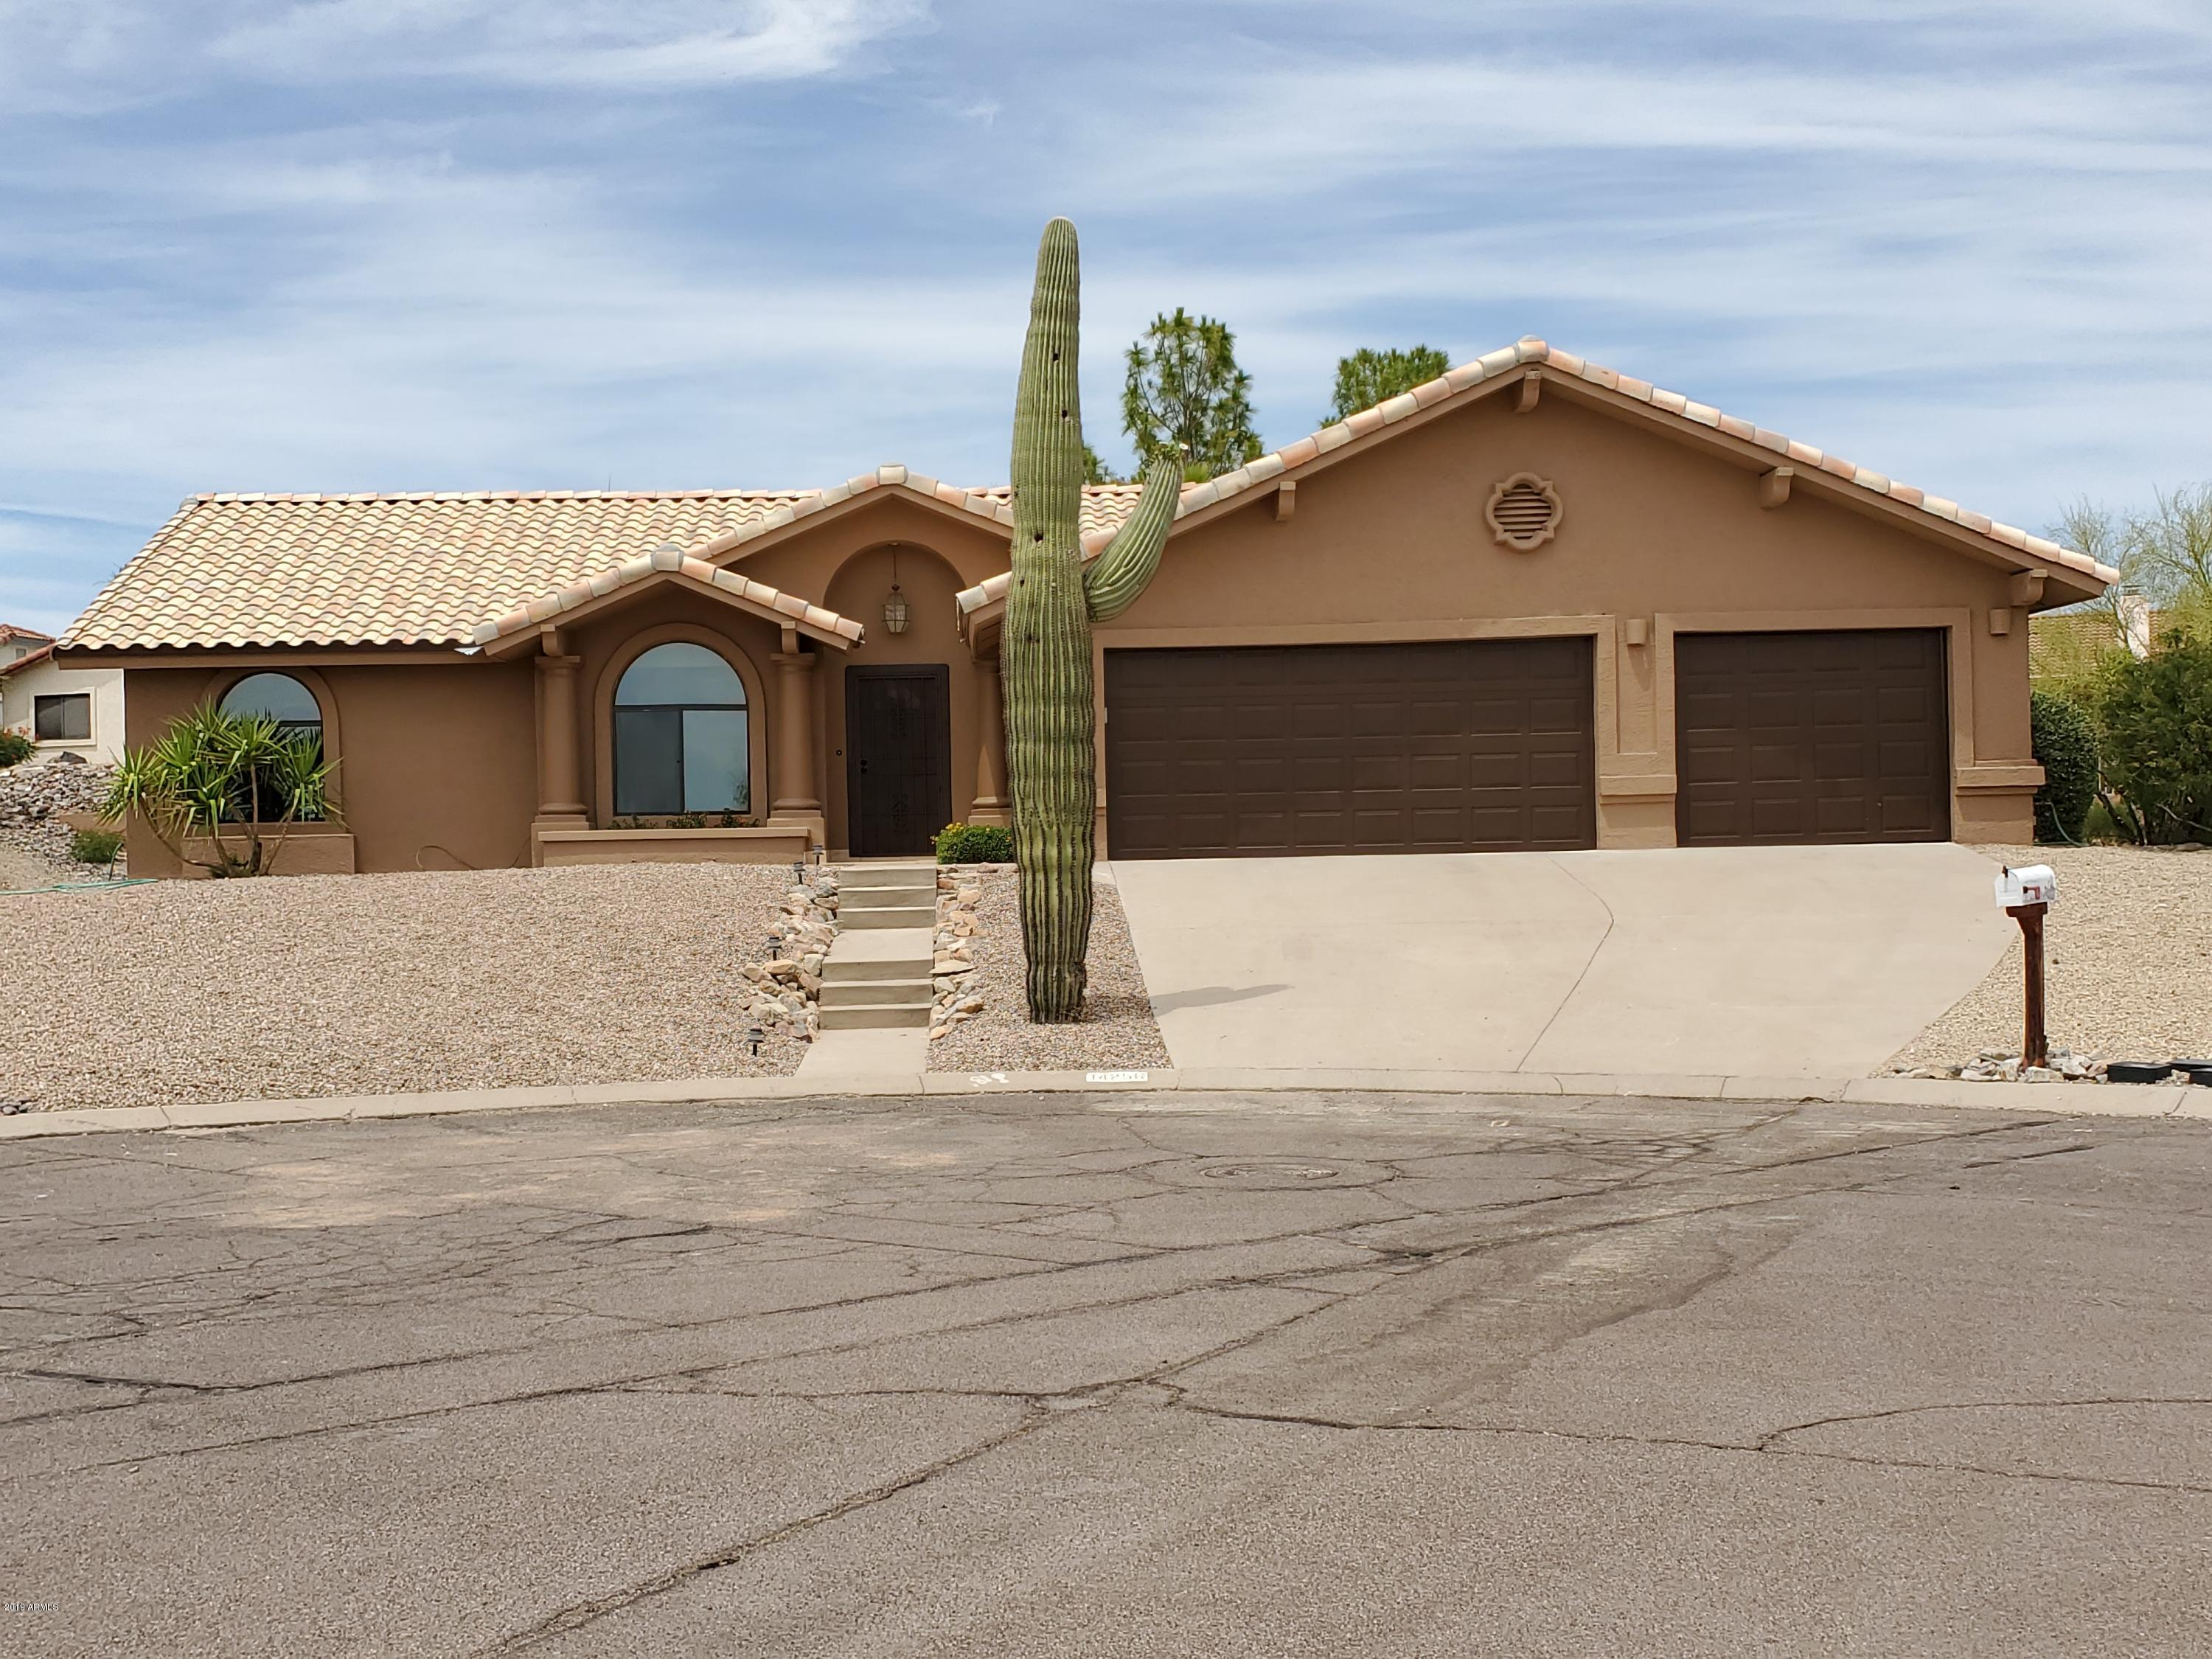 14256 N WESTMINSTER Place, Fountain Hills, Arizona